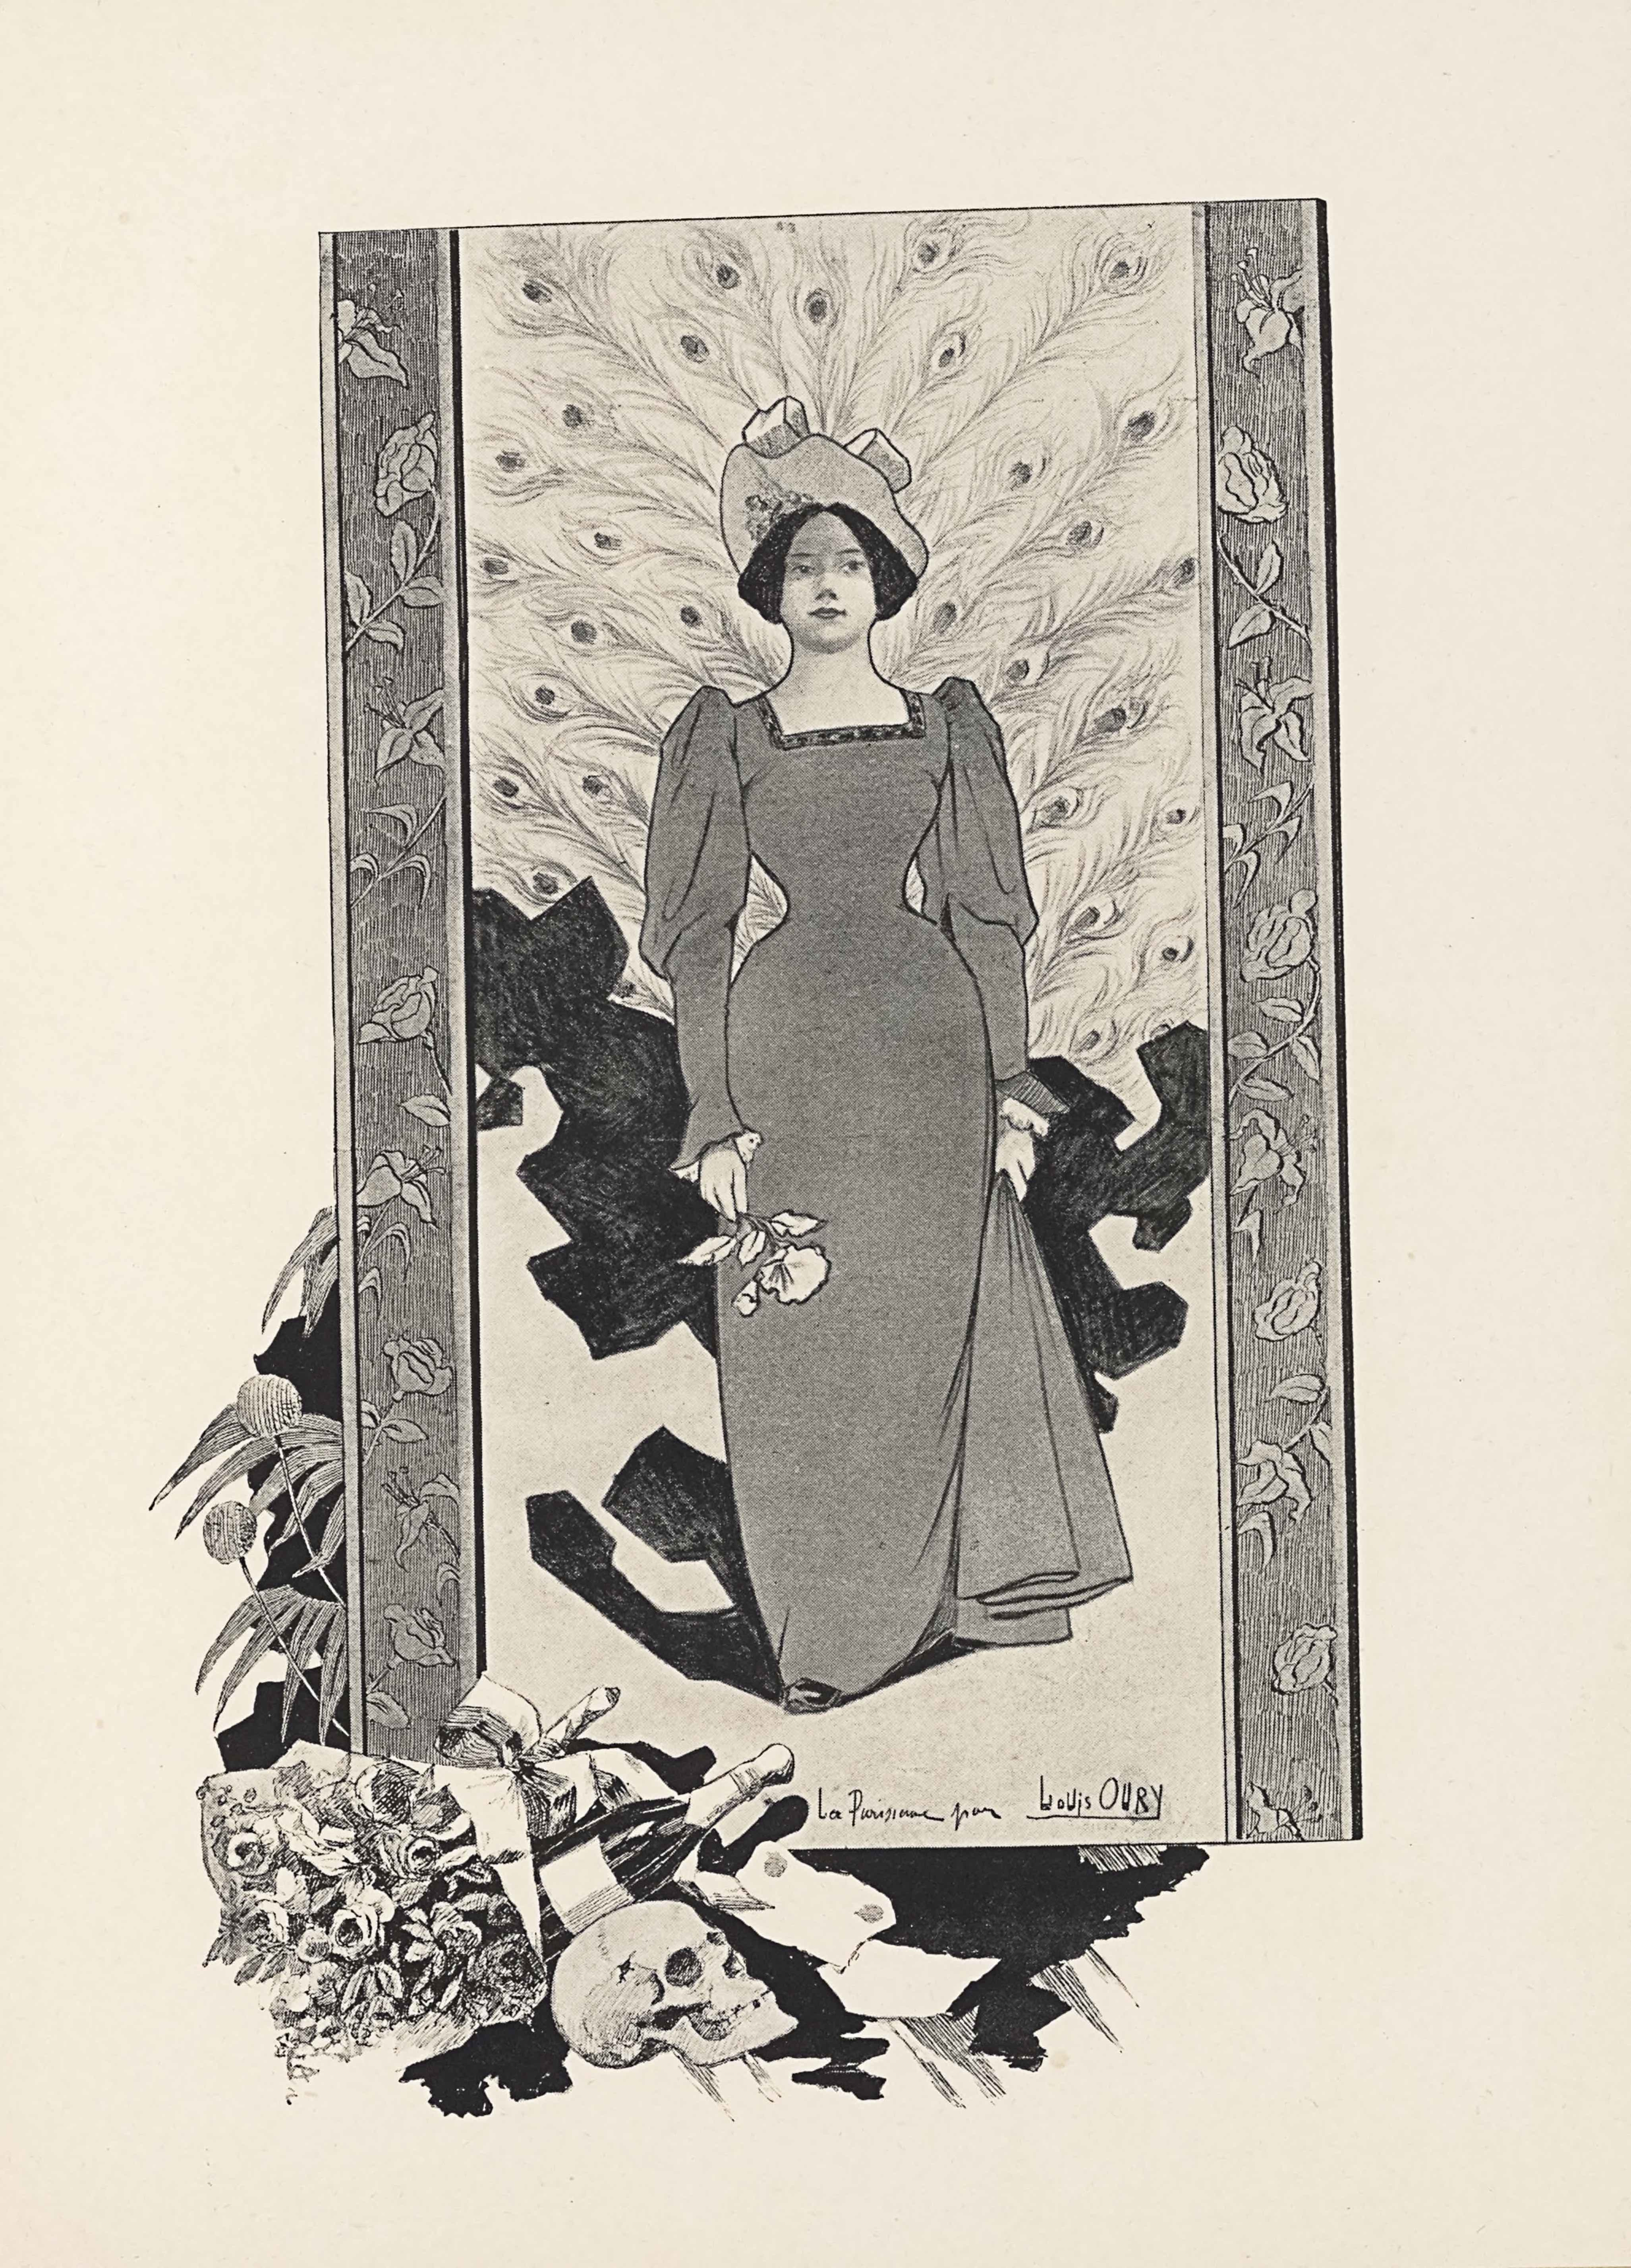 """The halftone image reproduces a poster in portrait orientation. The image is of a full-length figure of a woman, facing frontally. Out of the frame around her spill flowers, champagne, and a skull. The woman takes up almost the whole page, in a big rectangular portrait frame. The frame has a thick border on the left and right side only, with engraved roses. The woman is foregrounded, centered, and takes up three-quarters of the height and half the width of the space. She is wearing a darker gown with a square neckline that has a slight geometric pattern of squares or triangles in a thin line around the neck. The dress pinches in at the waist, with puffy shoulders and then sleeves that tighten at the forearm. In her right hand is a single flower, which she holds upside down, with the petals facing the ground. Her left hand is holding a swath of her dress and lifting the side slightly. Her hair is tied back, and she wears a large hat, tilted up away from her face with a slight floral detail on the underside of its brim and bow loops falling forwards over the edge. In the background on the bottom half of the picture is a patternless, dark geometric shape. It juts out around her skirt in blocky, irregular extensions. The top half of the picture has a background of peacock feathers that emerge out from directly behind the woman's back. They reach out all the way to the border of the picture. In the bottom right, the picture has the text """"La Parisienne May Louis OURY"""" in a single line, and with the artist's name """"Louis OURY"""" underlined. Seeping out from behind the bottom of the picture frame is a black liquid. On top of the liquid and just in front of the picture is a scroll laid out with no writing on it. To the left of that is a skull in portrait, facing to the right. Behind the skull and just before the picture is an unopened bottle of champagne lying sideways to the right and a bouquet of flowers rests on top of the bottle with the stems fallen slightly to its left. E"""